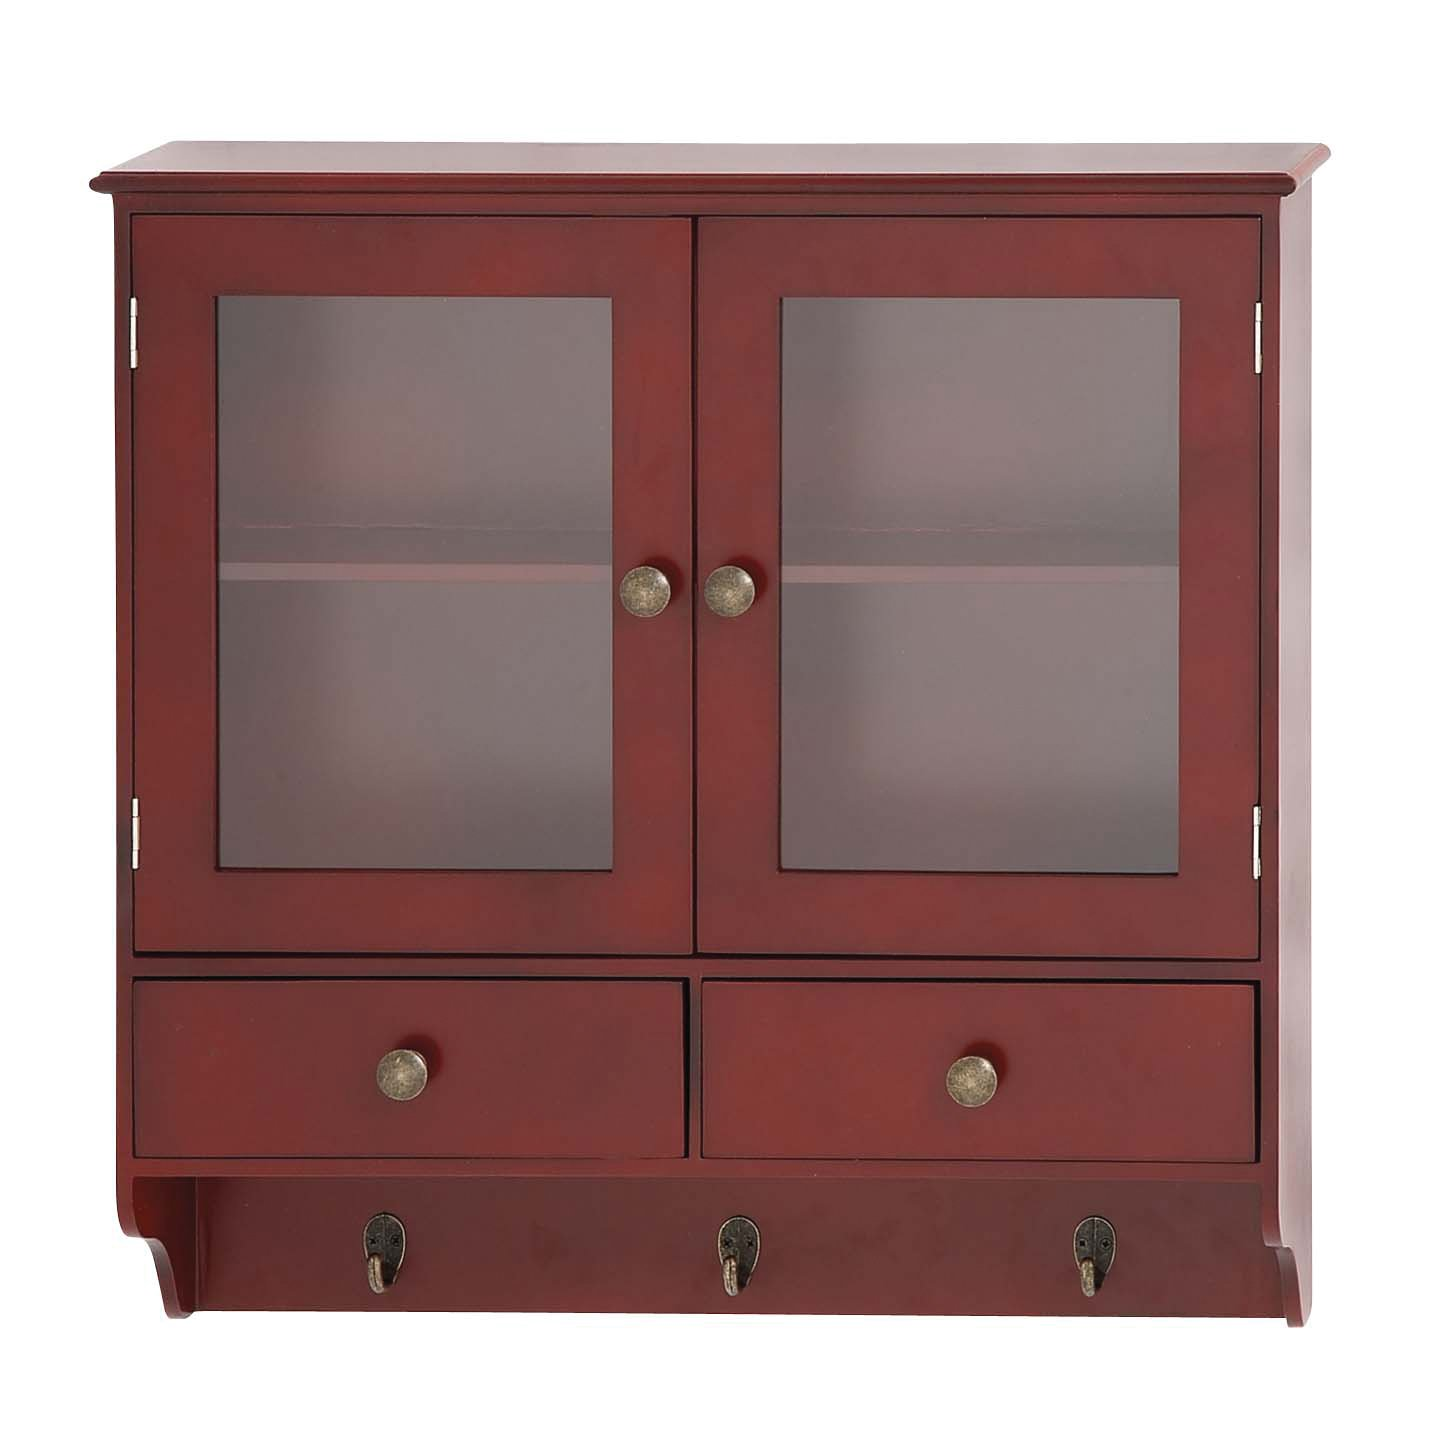 Benzara The Bright Wood Wall Cabinet with Hook 62645